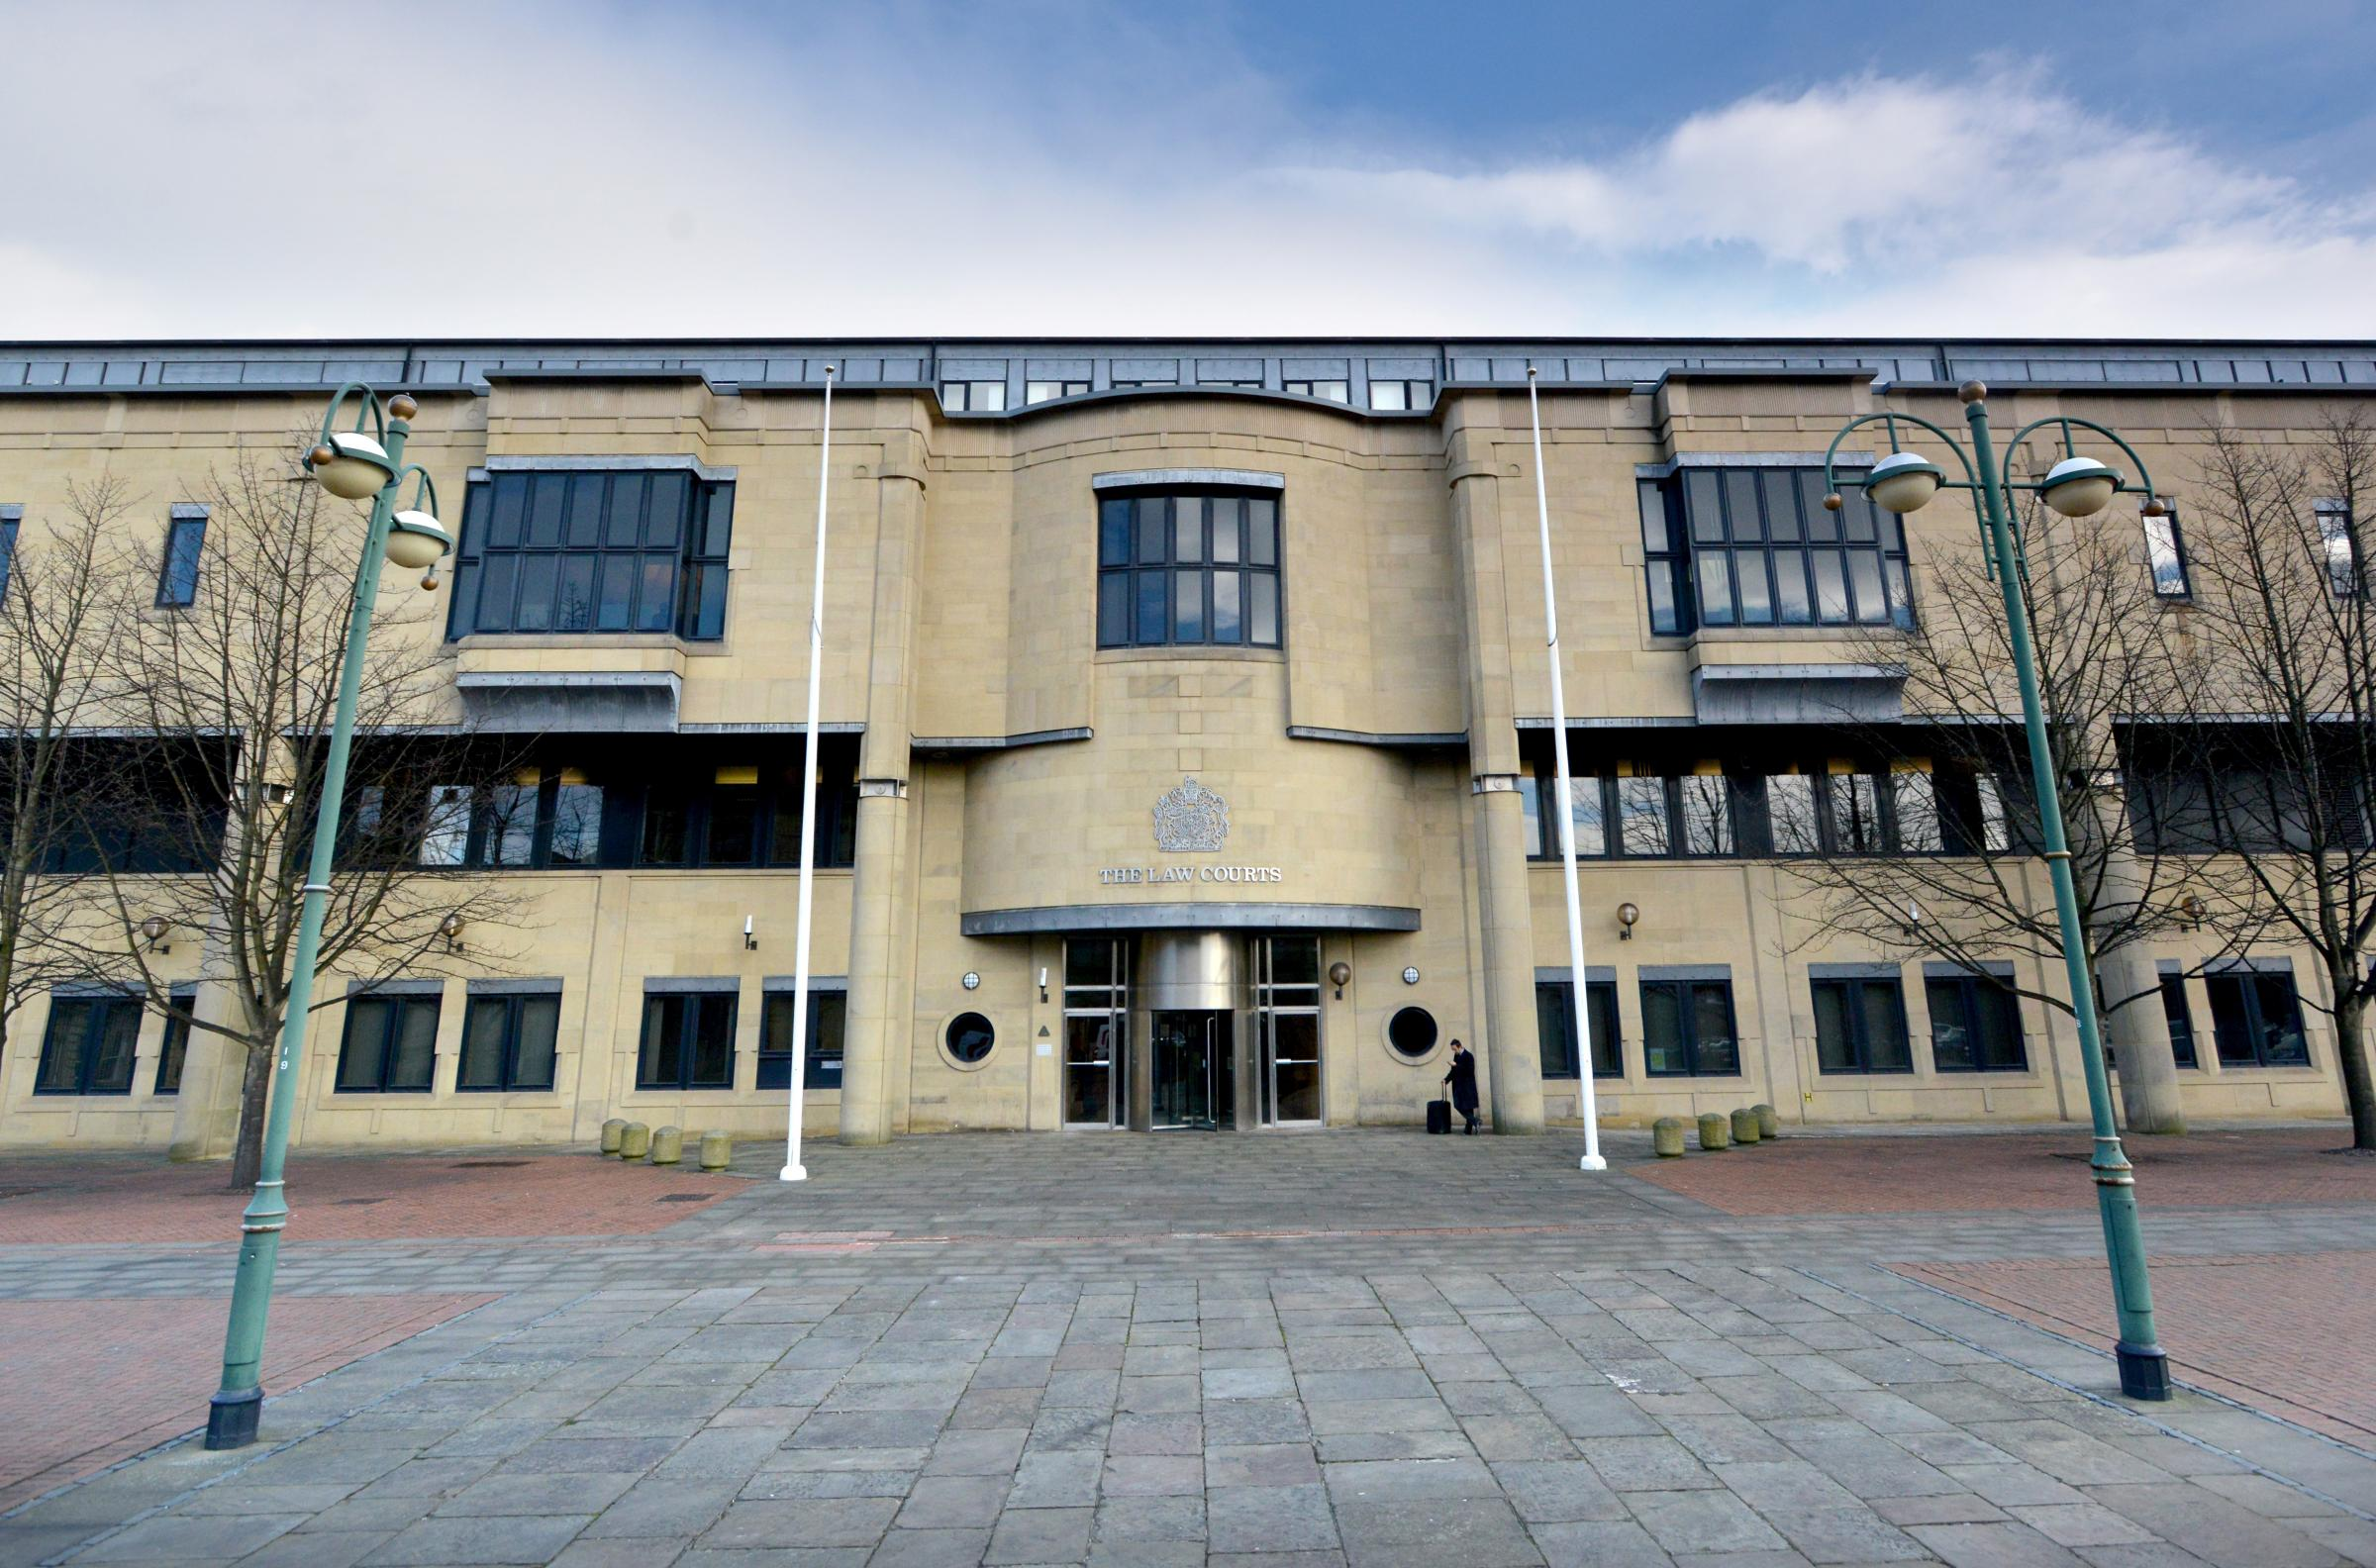 Imran Khan was jailed for 12 months at Bradford Crown Court